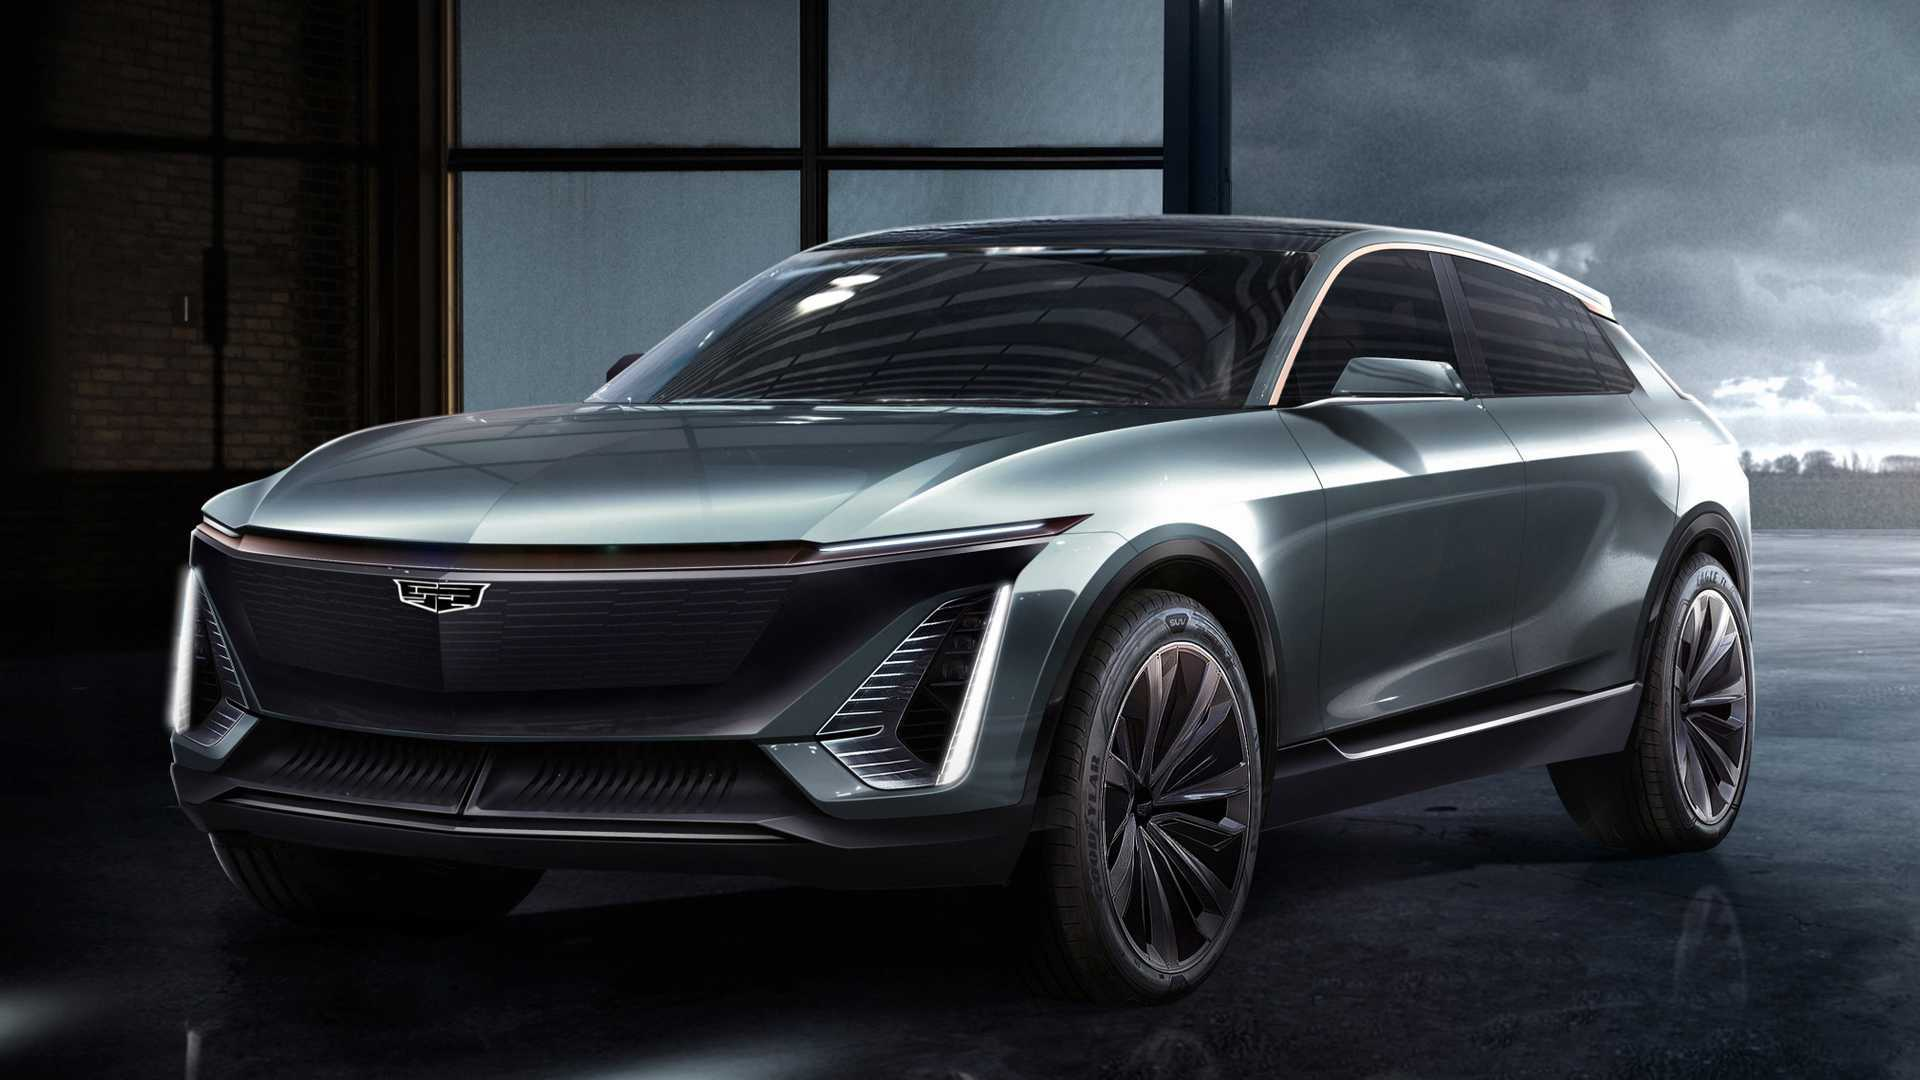 First Standalone Cadillac Electric Car Expected In 2022